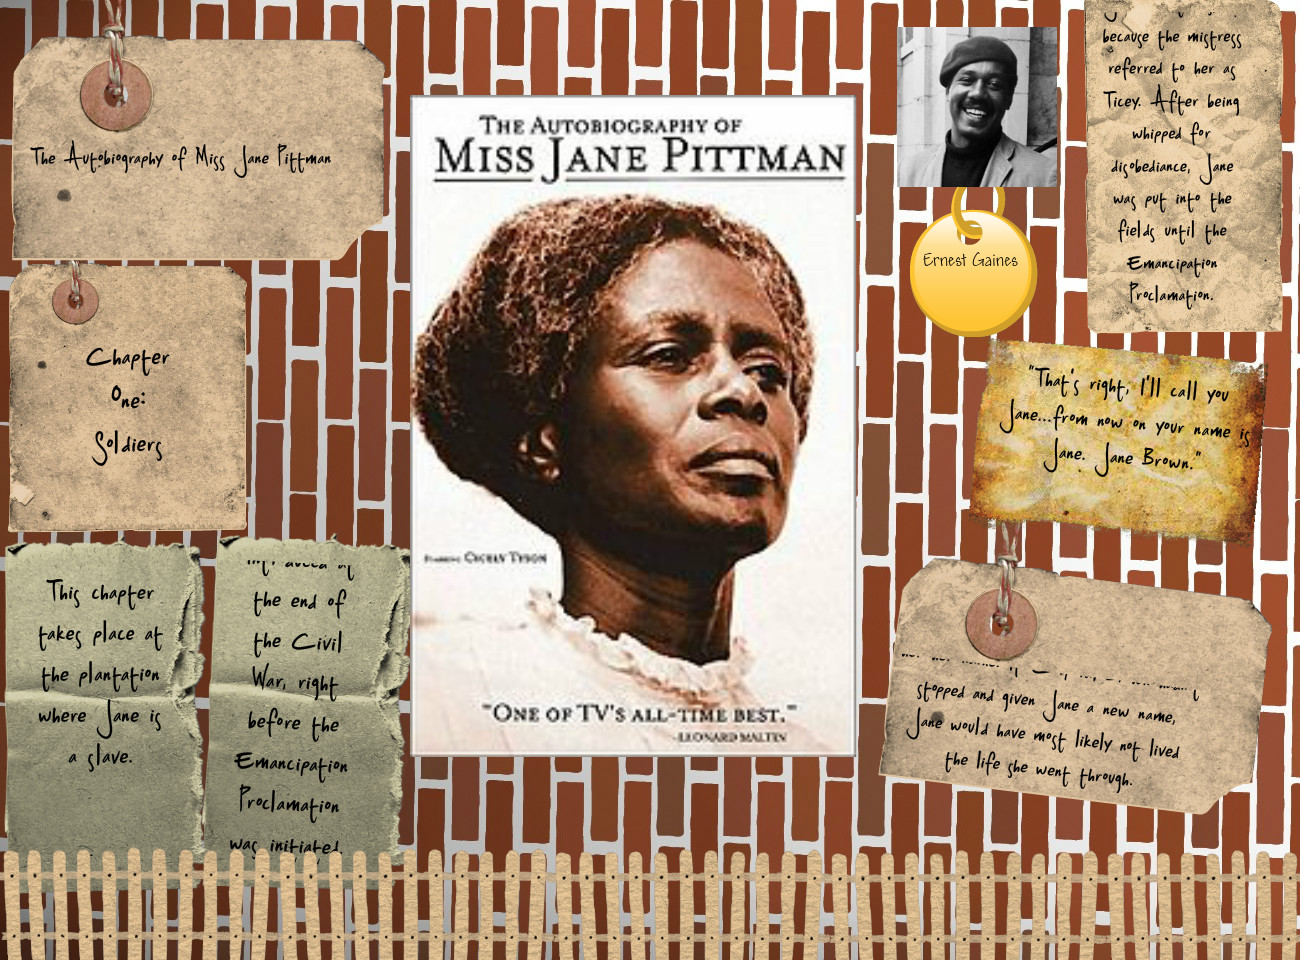 the life of jane pittman The autobiography of miss jane pittman is a 1971 novel by ernest j gainesthe story depicts the struggles of african americans as seen through the eyes of the narrator, a woman named jane pittman.